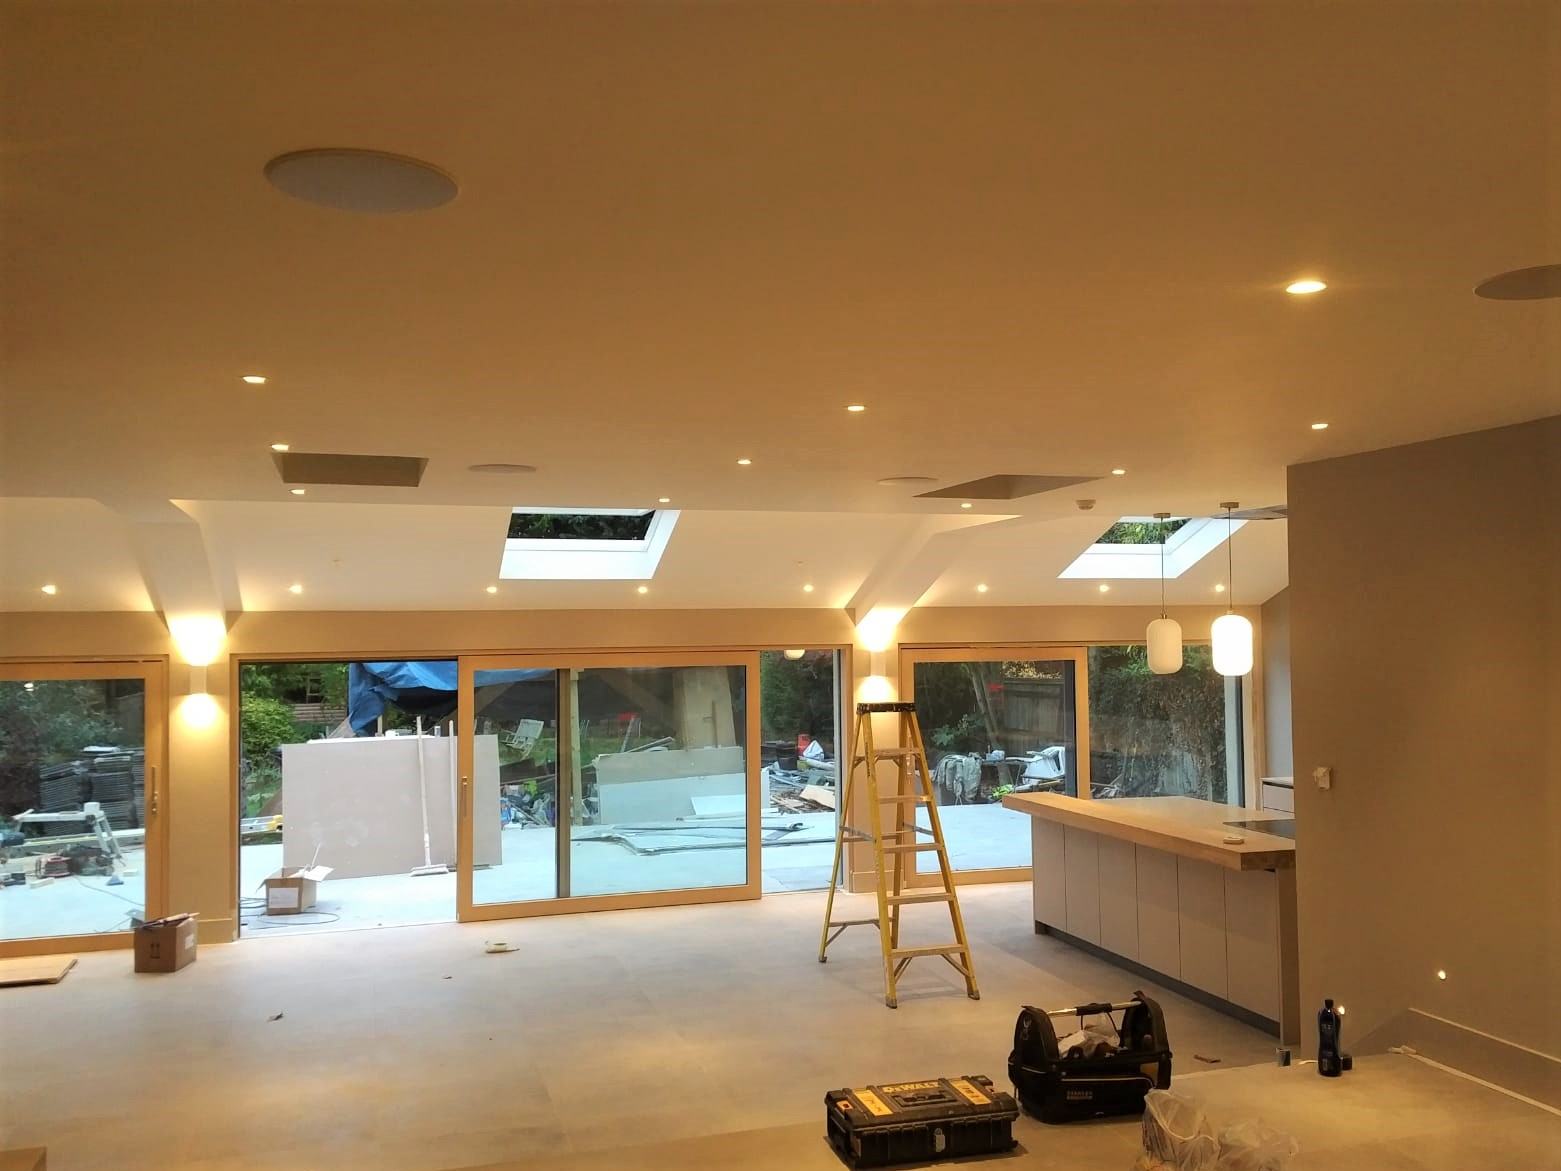 House extension and renovation construction progress